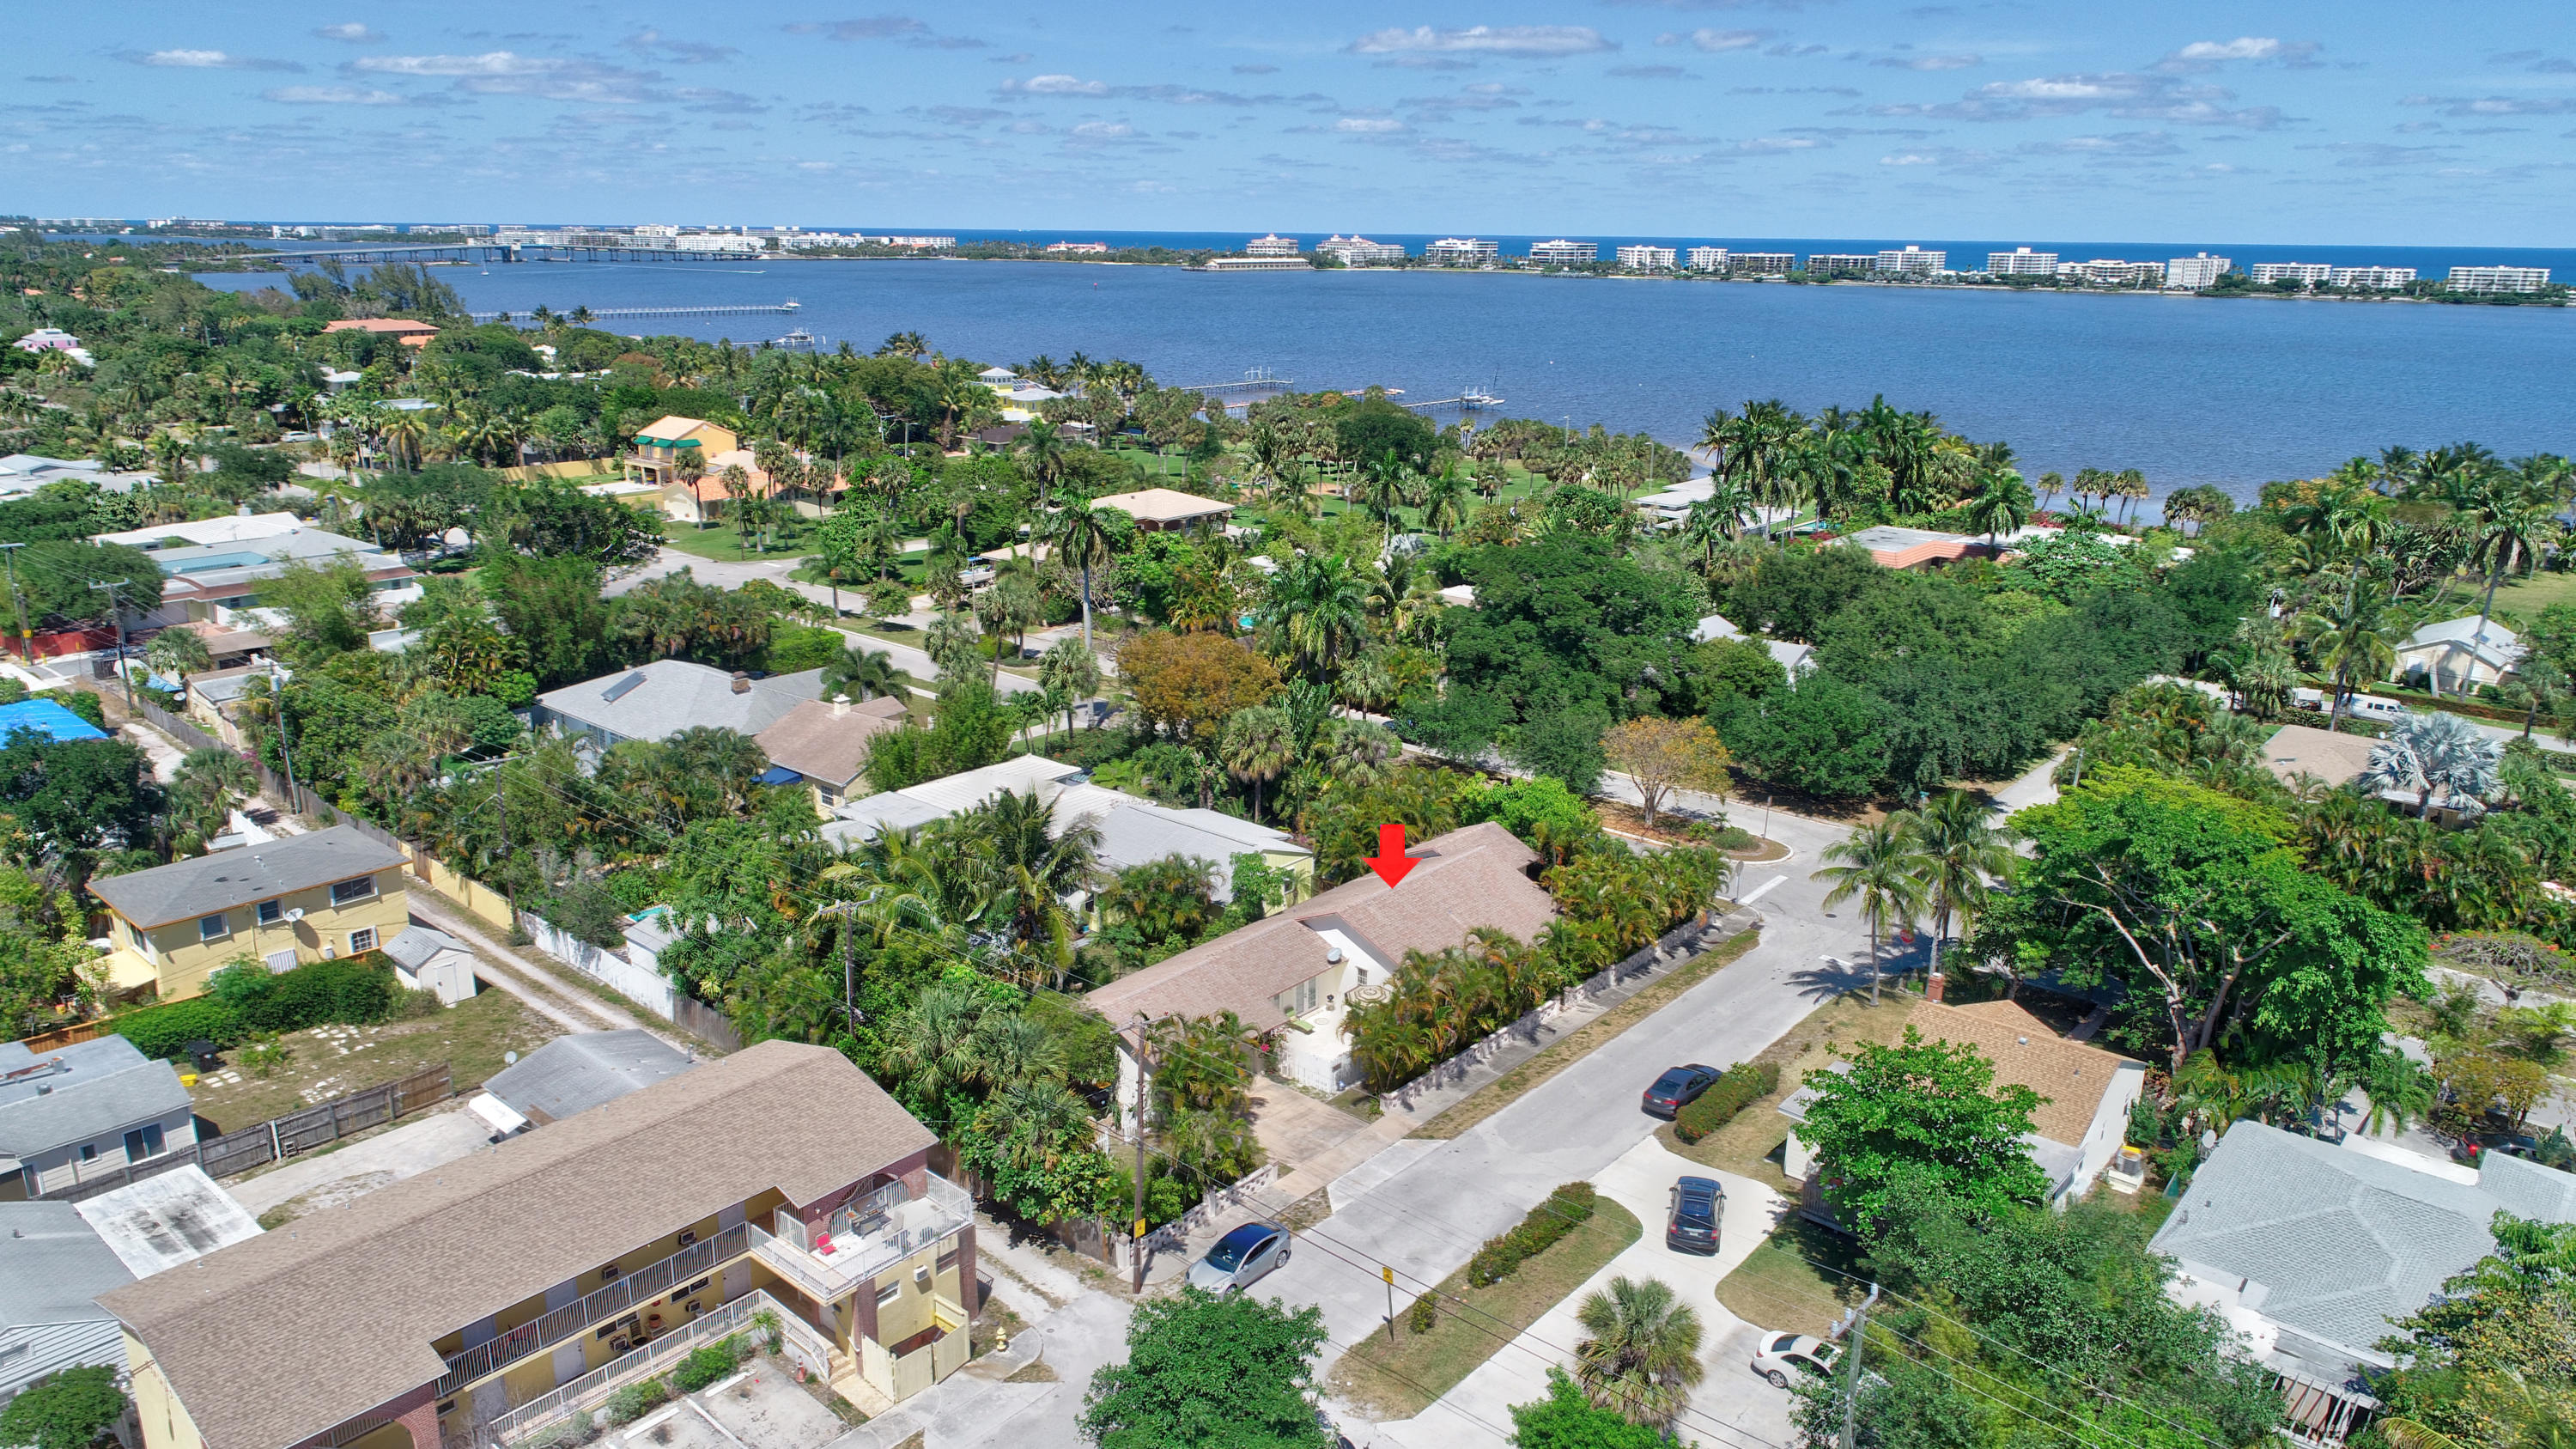 LAKE WORTH TOWN REAL ESTATE